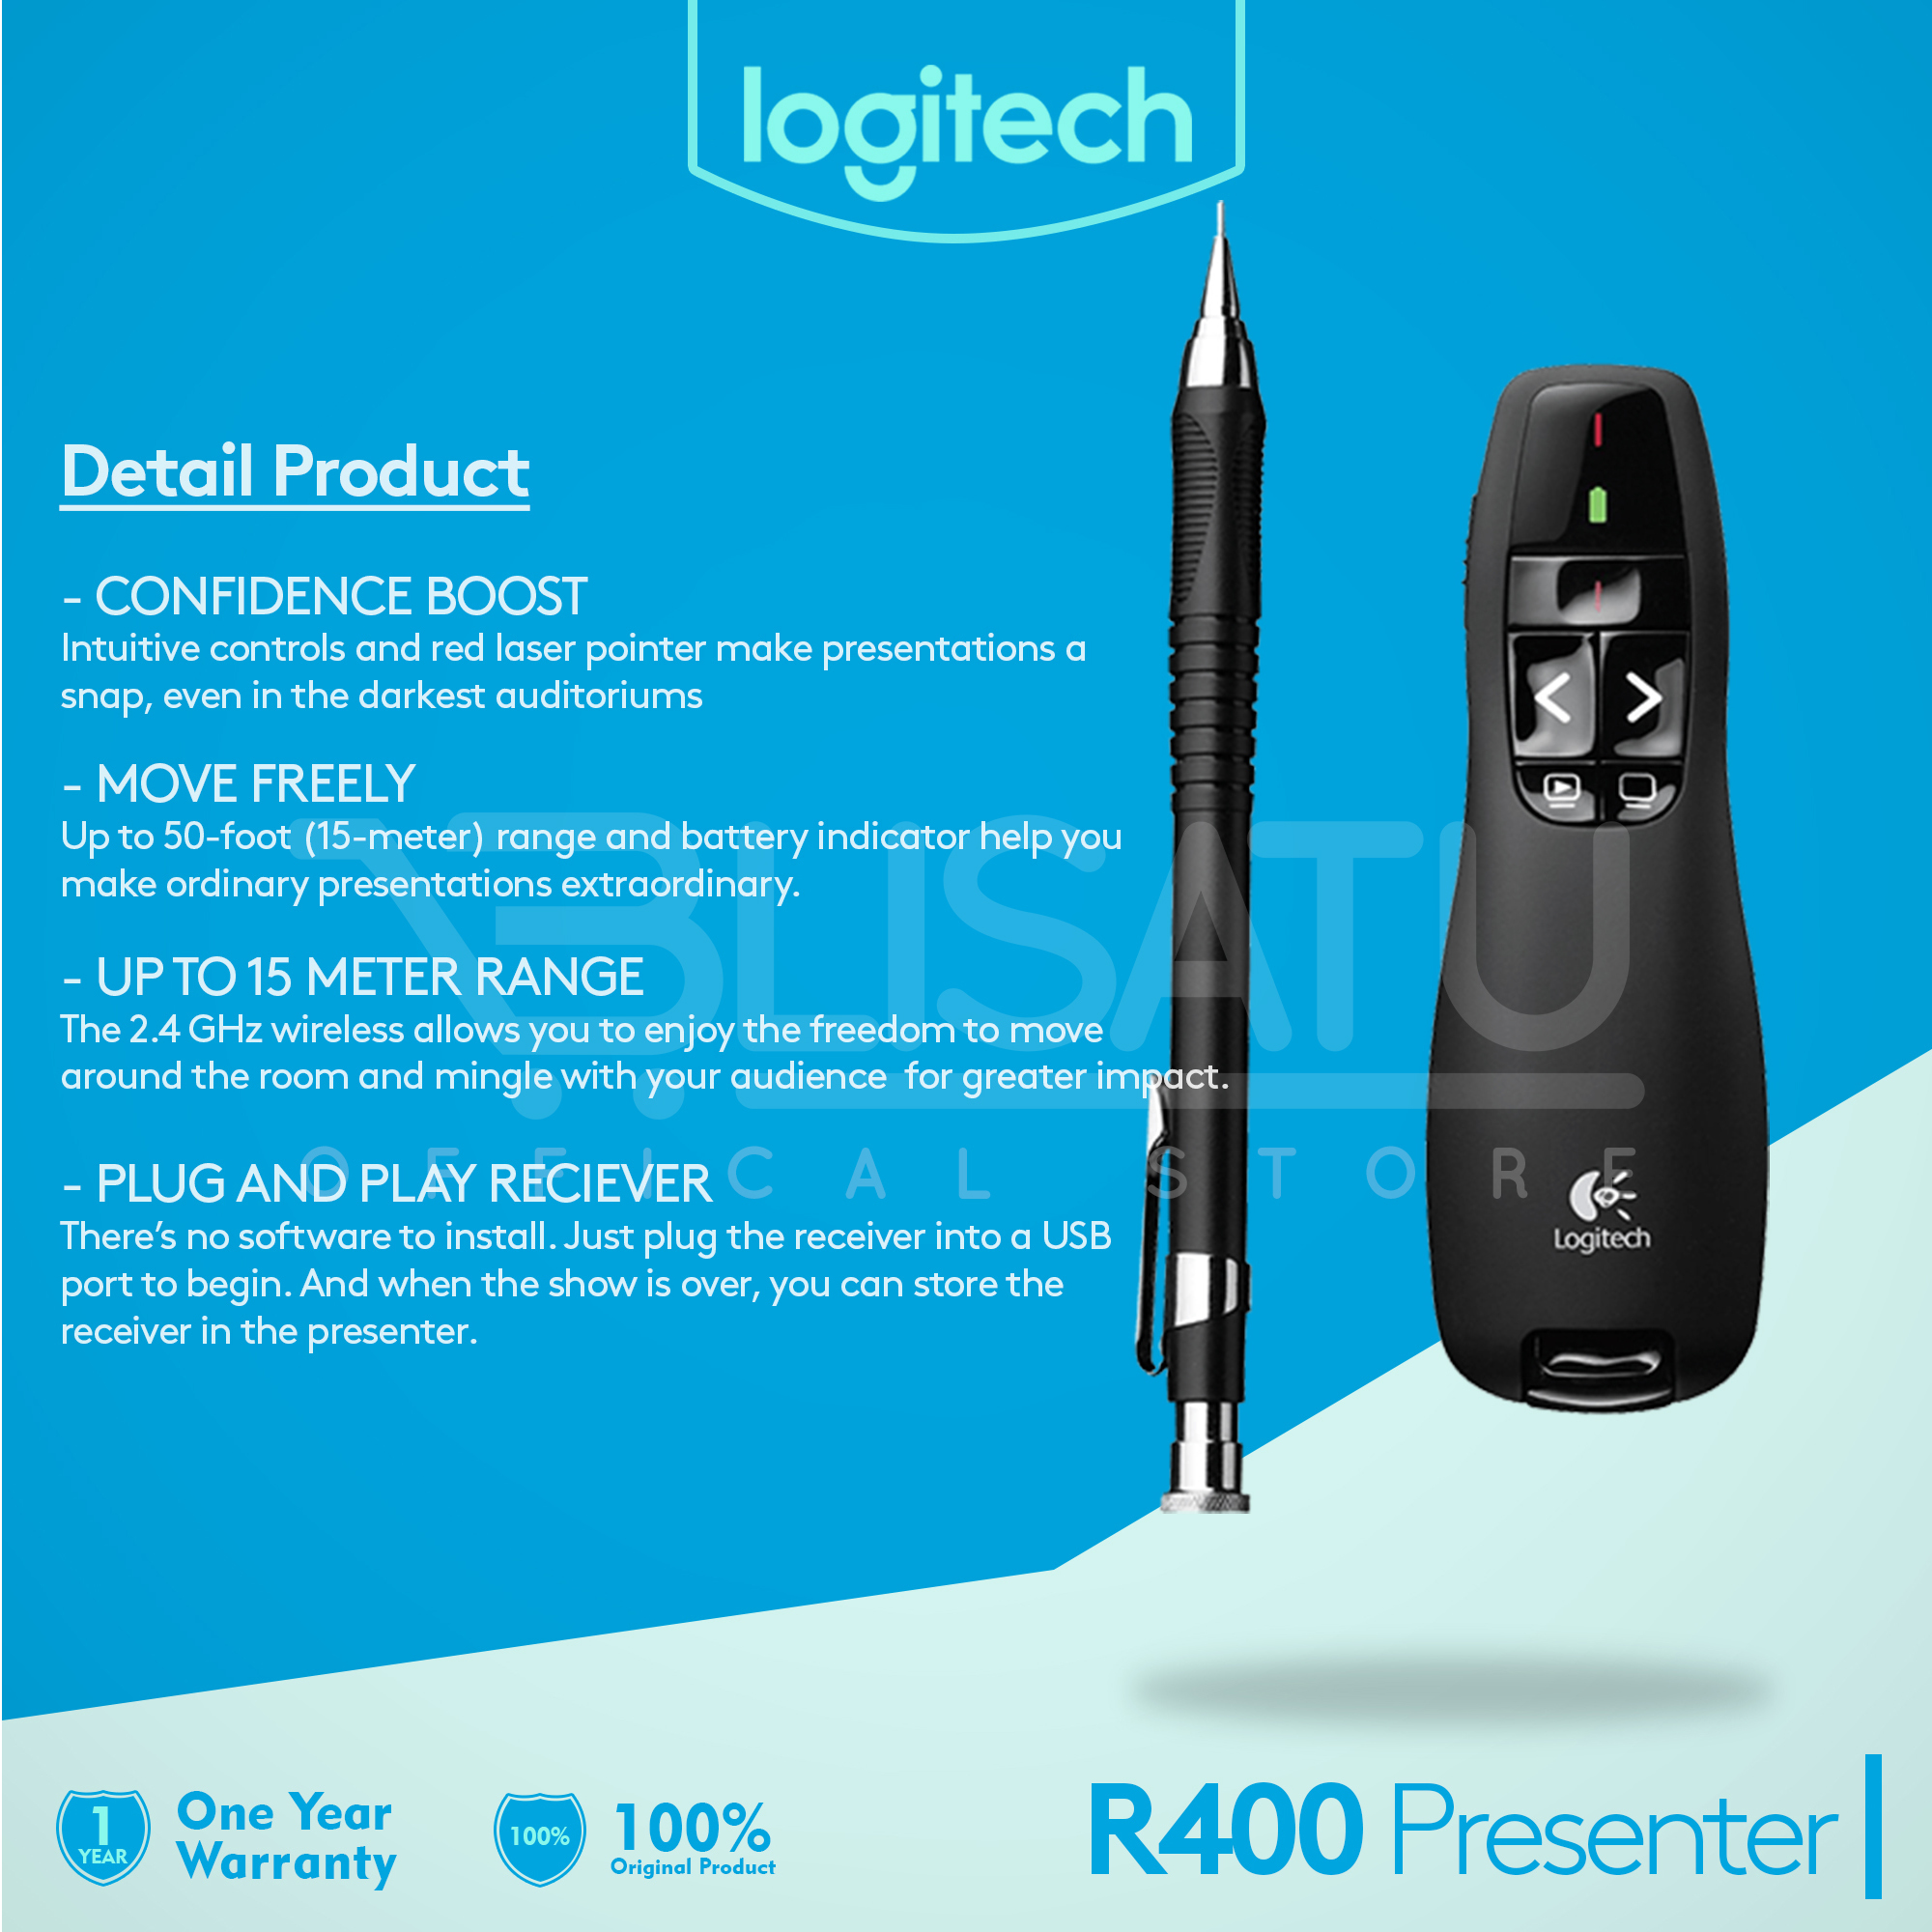 Jual Logitech R400 Wireless Presenter Garansi 1 Tahun Pointer